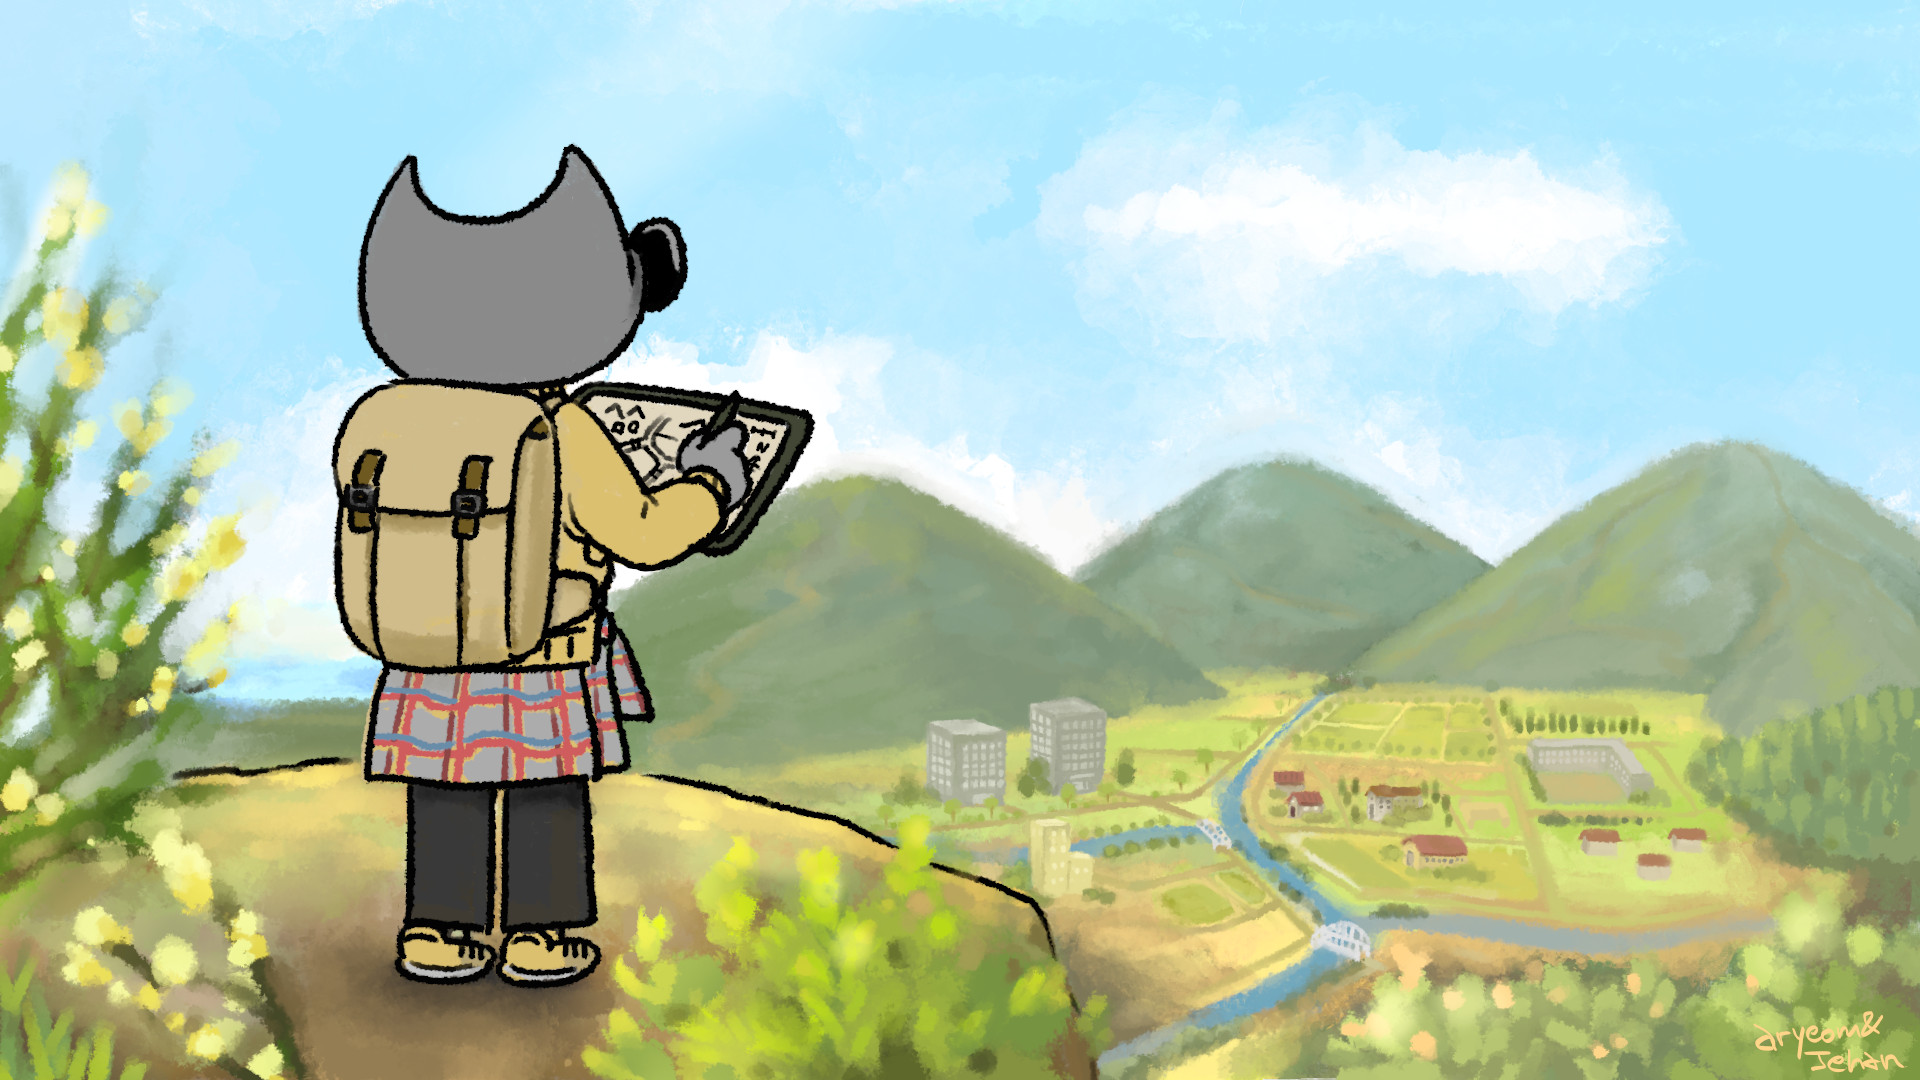 Wilber the geographer - Wilber and co. comics strip